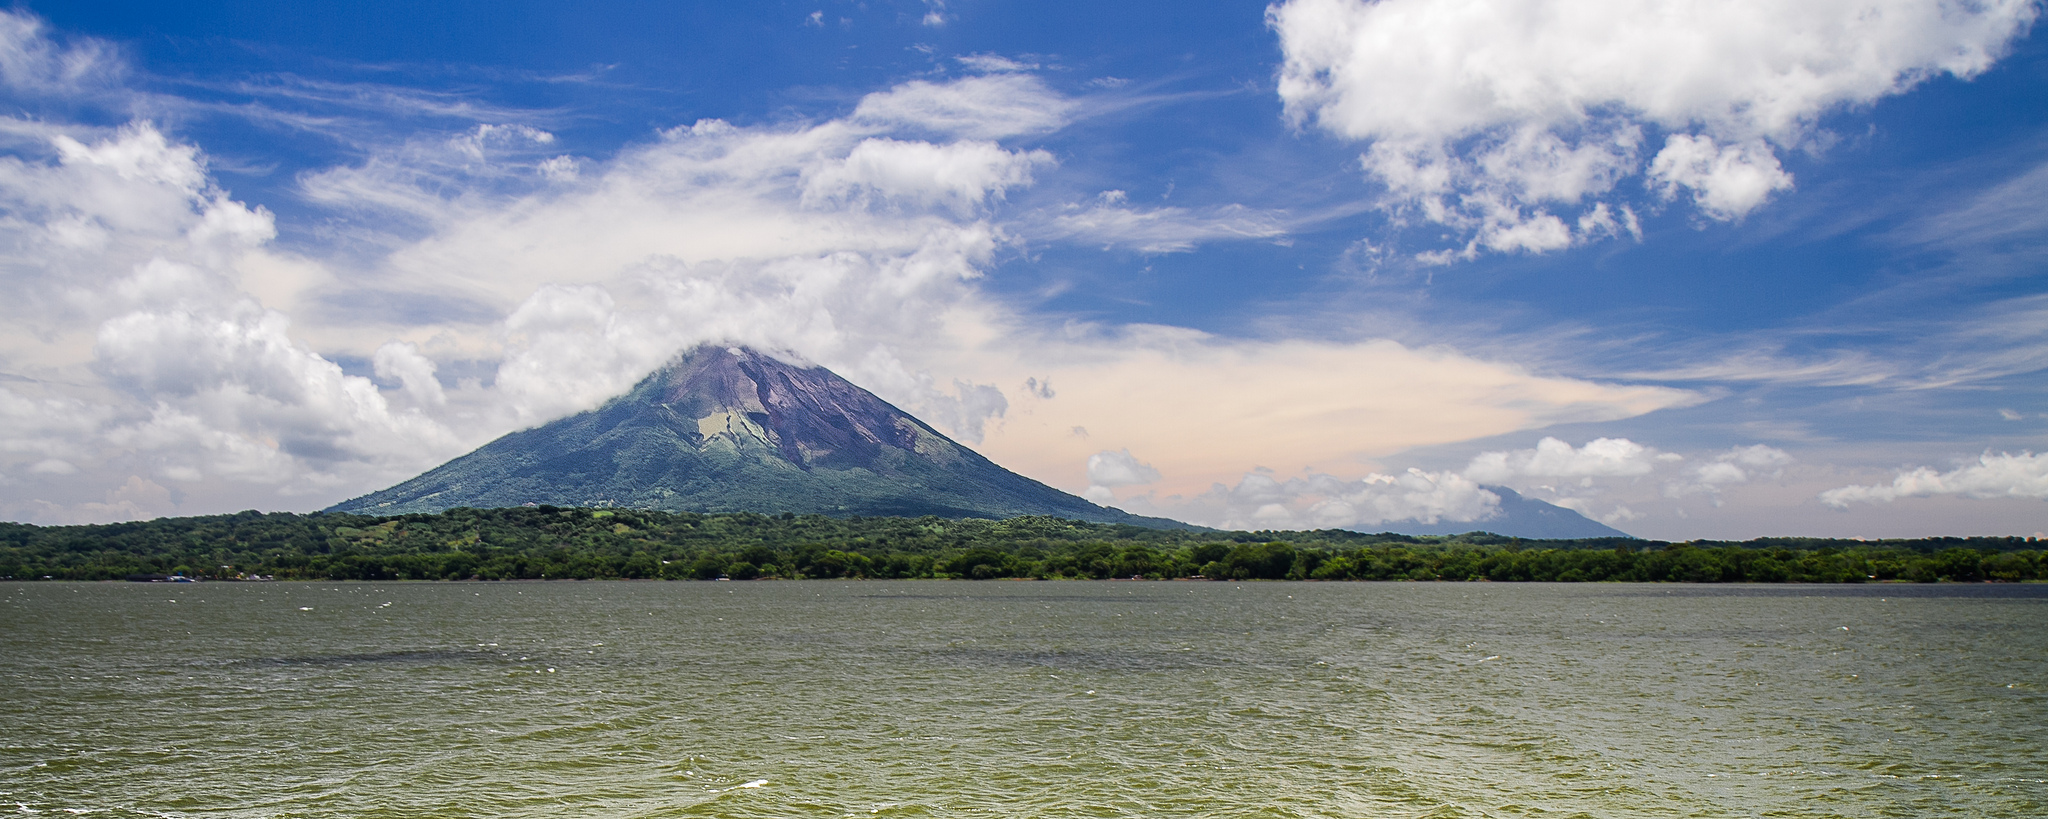 Ometepe, an island in Lake Nicaragua, lies just north of the proposed canal route.  Photo: David Armstrong.